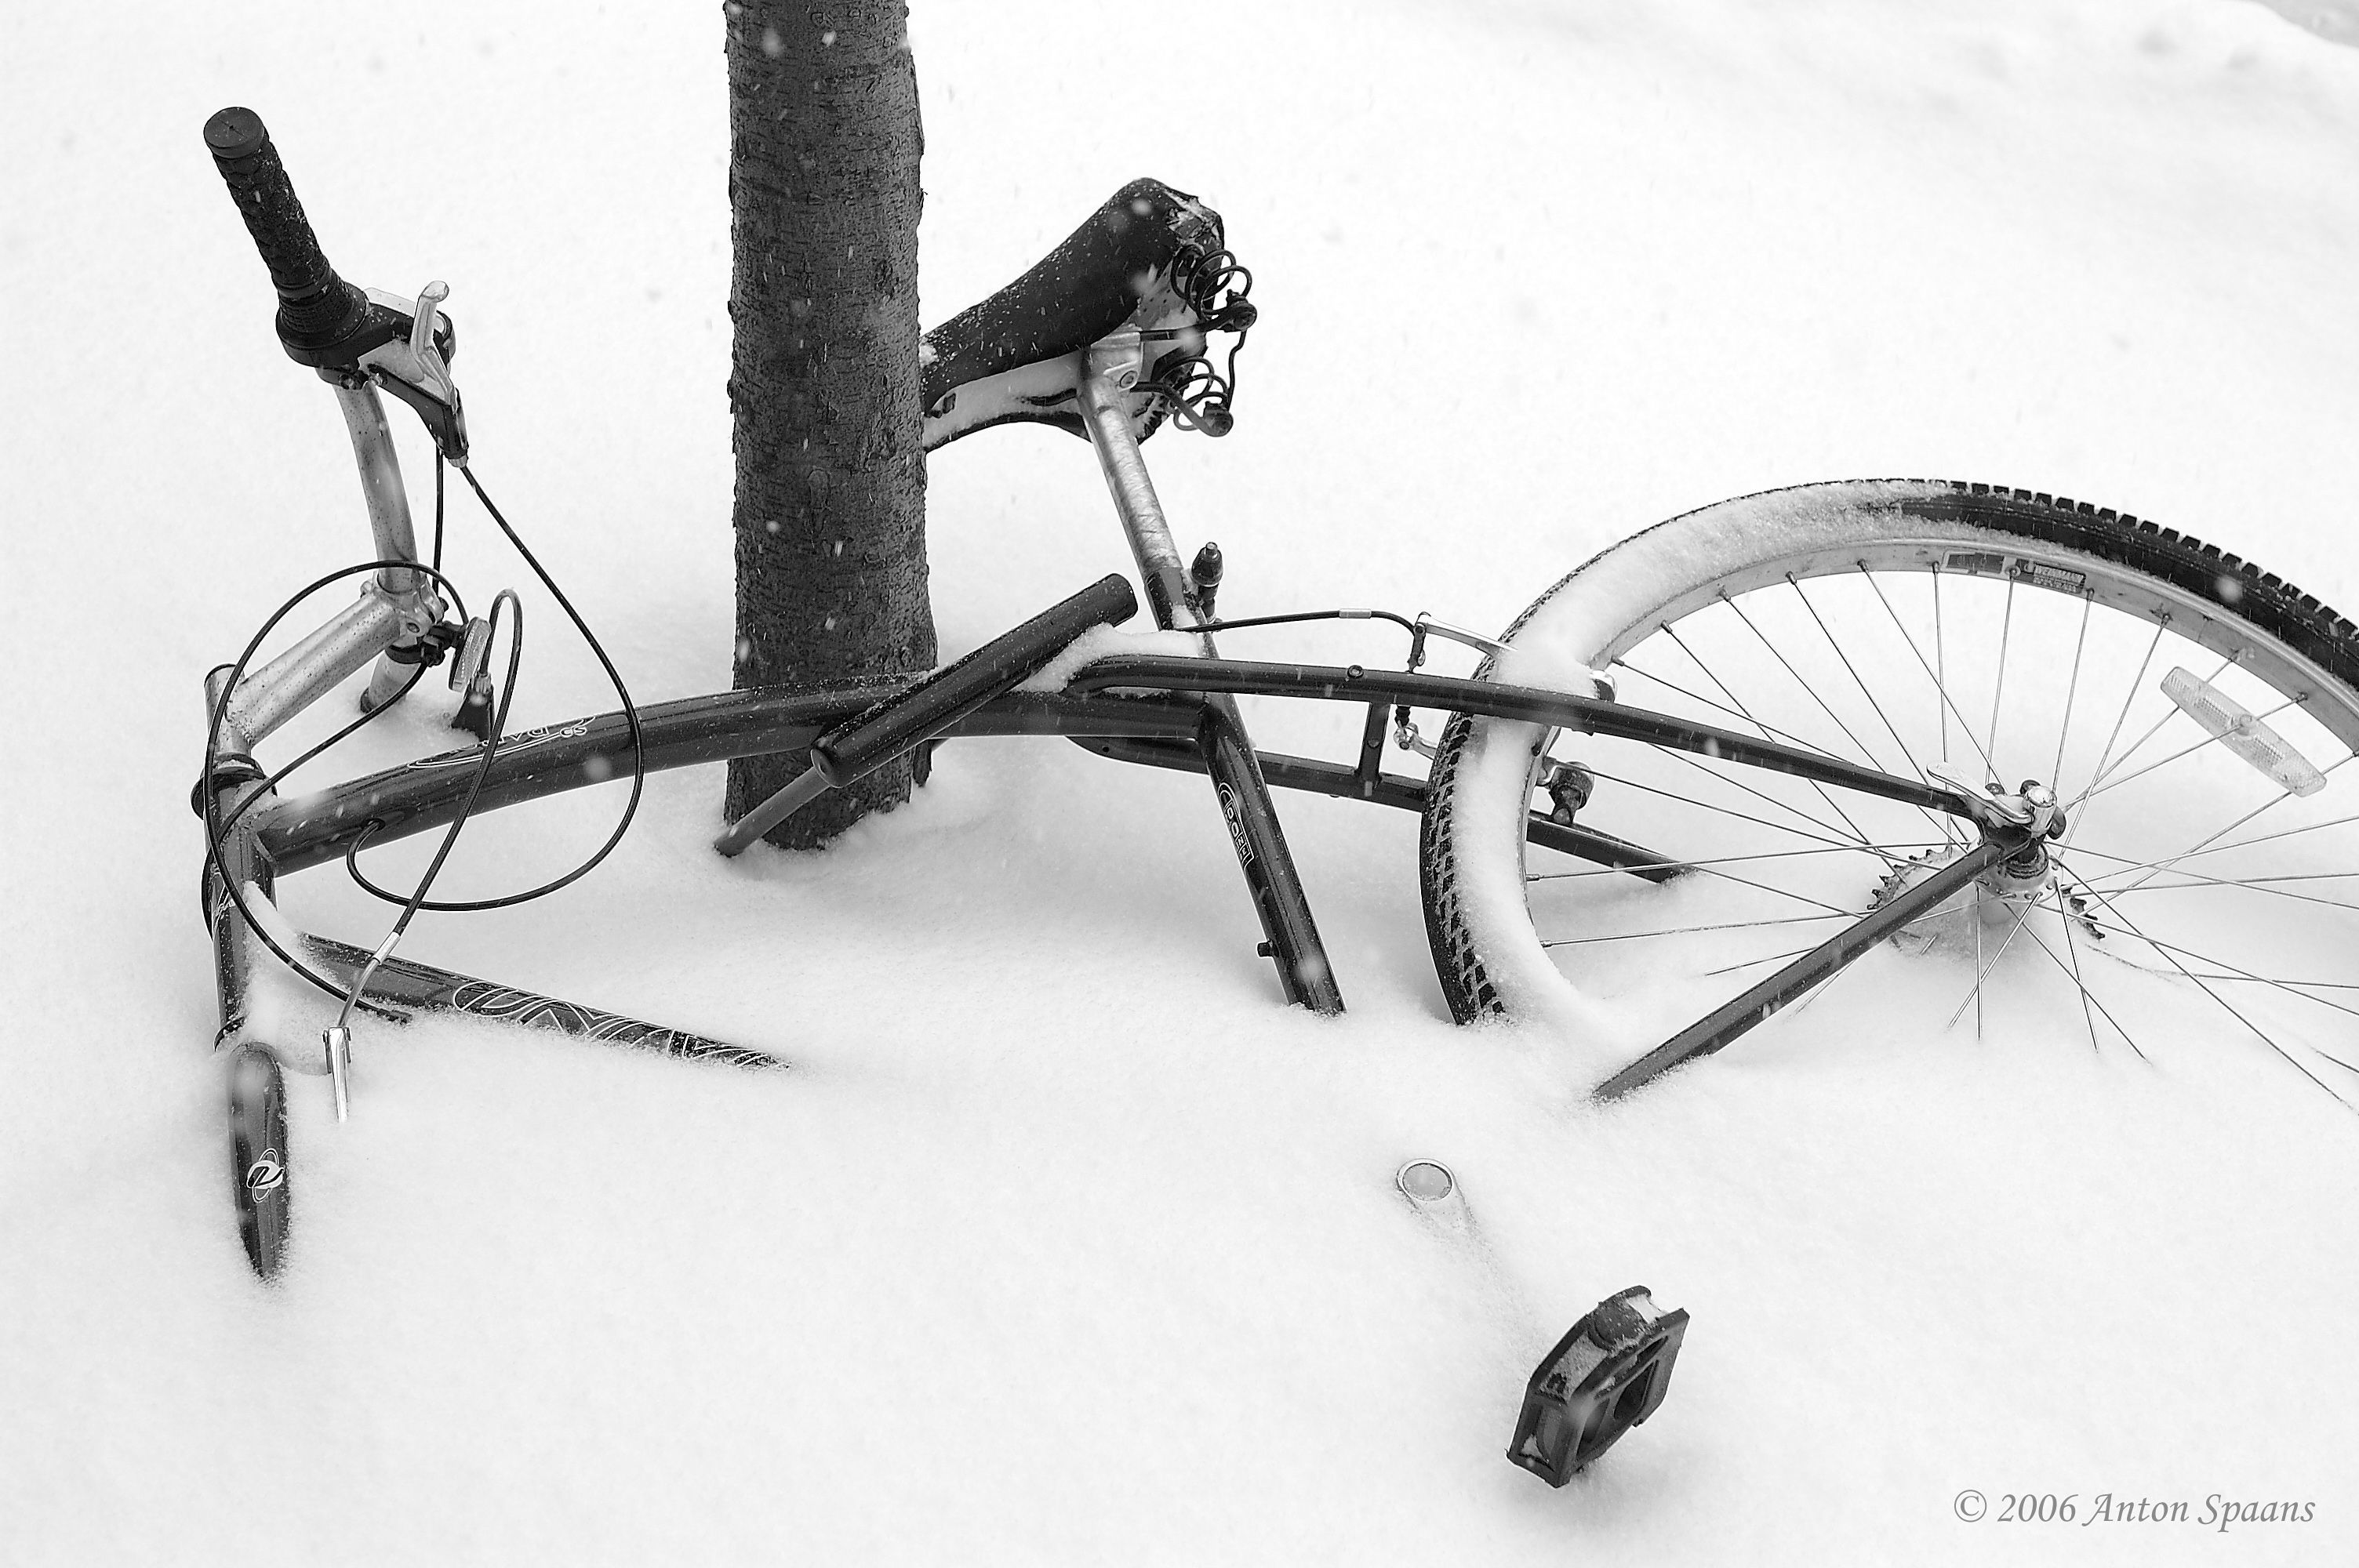 snow Bicycles HD Wallpaper